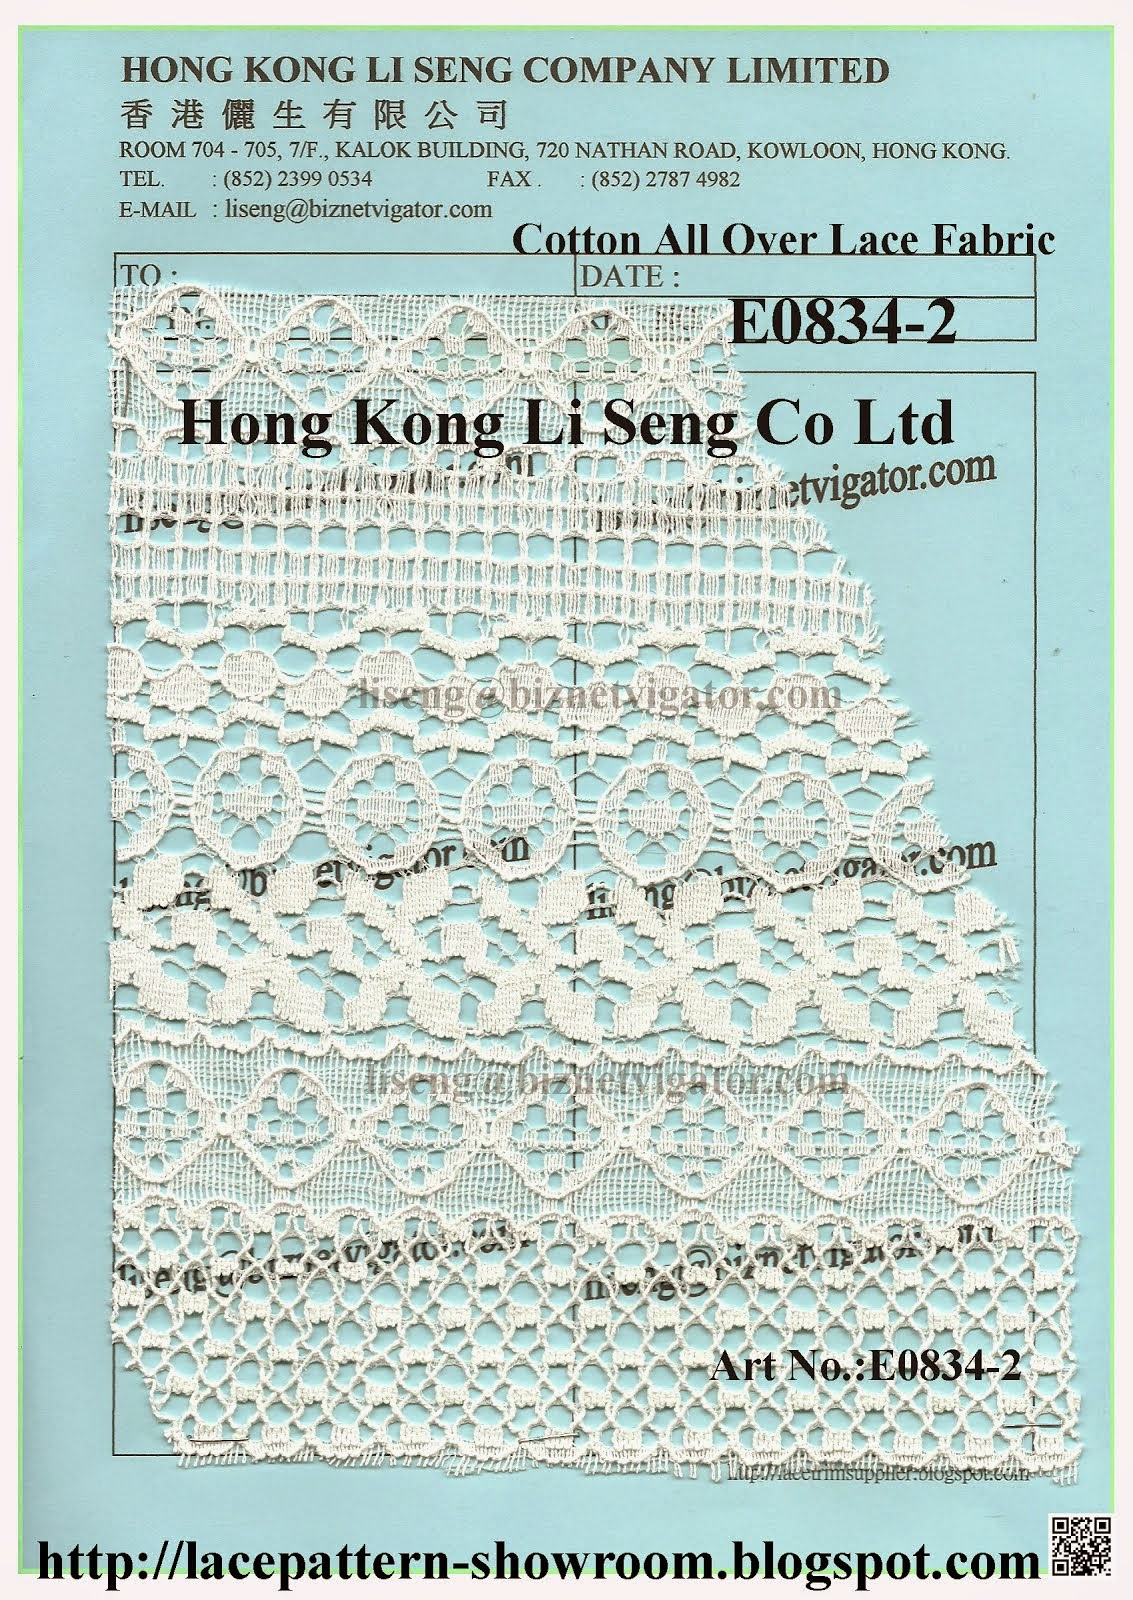 Cotton All Over Fabric Wholesaler Manufacturer Supplier - Hong Kong Li Seng Co Ltd